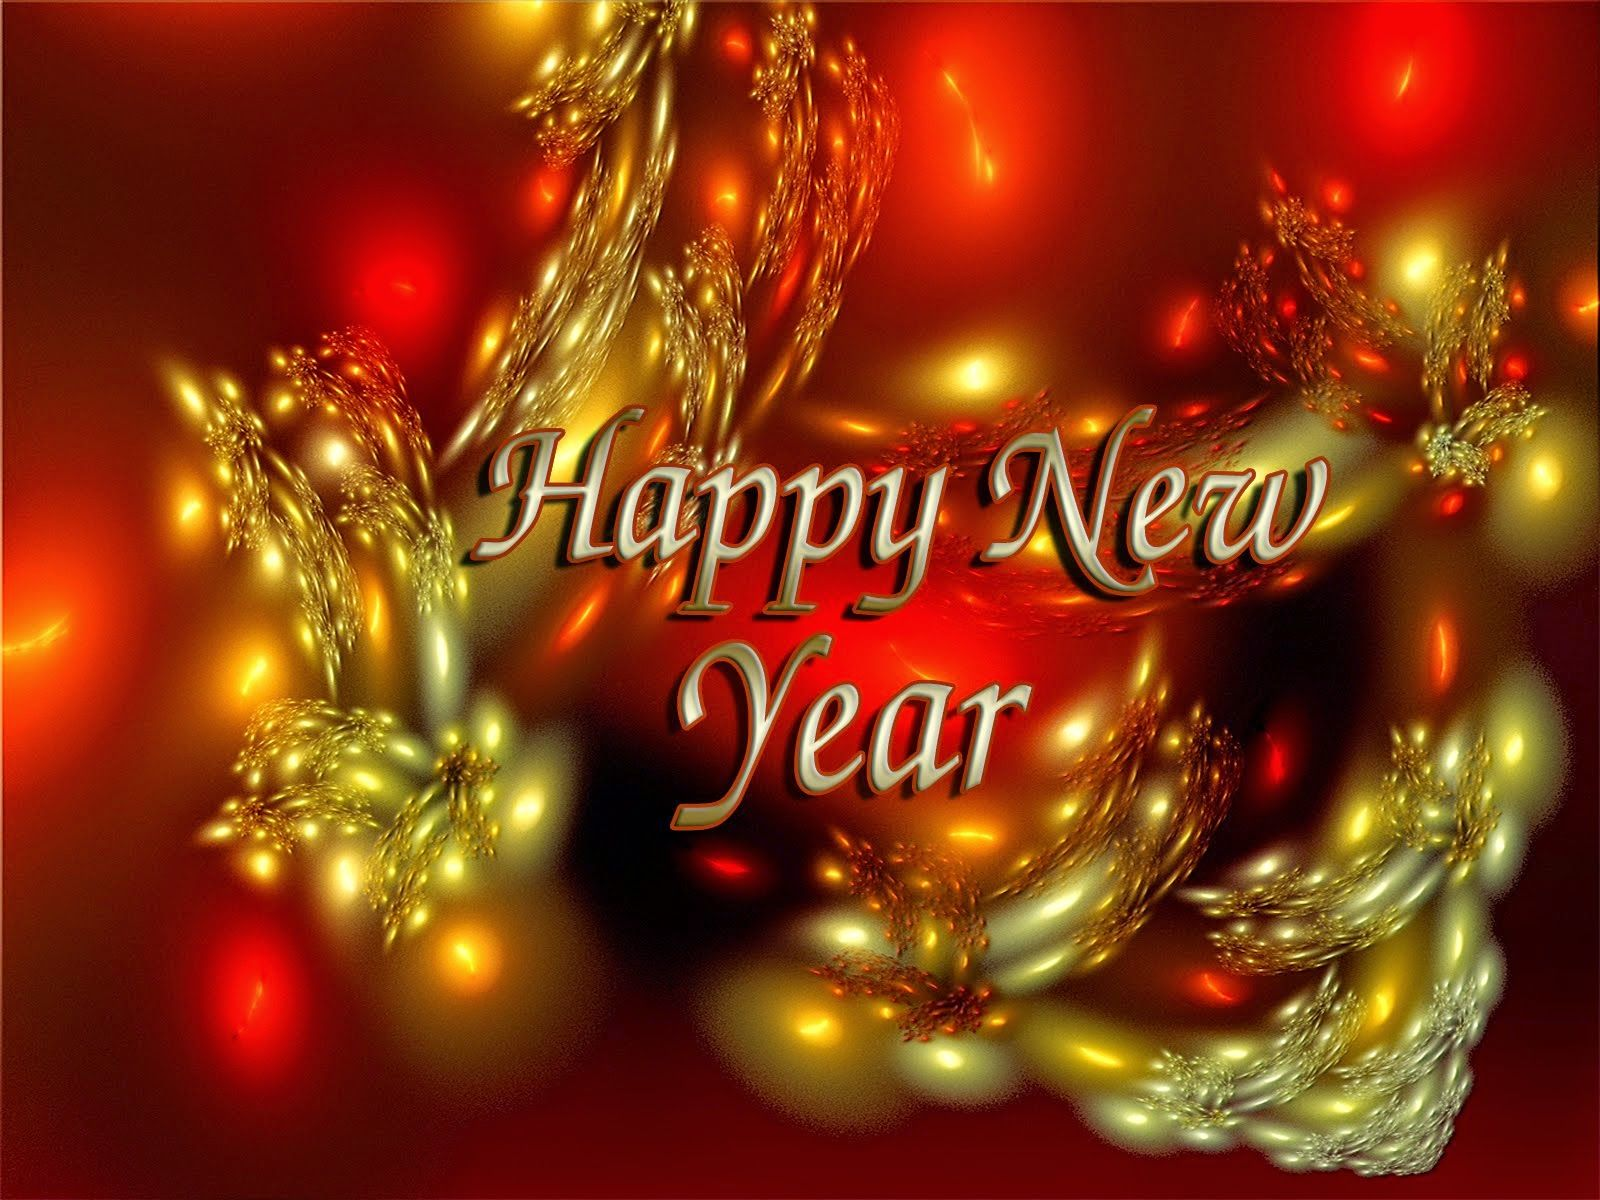 Wallpaper download new year 2015 - Happy New Year 2016 Live Wallpaper